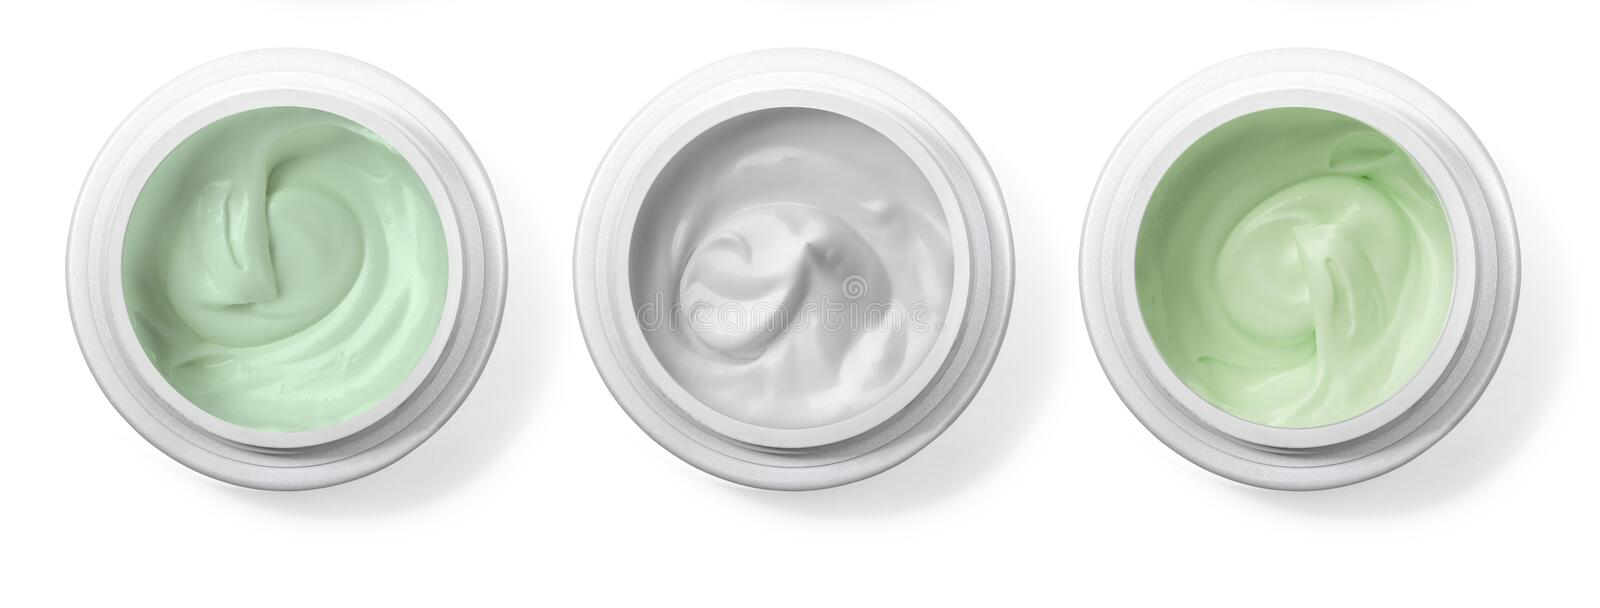 Hygienic cream, top view. Isolated on white background stock images